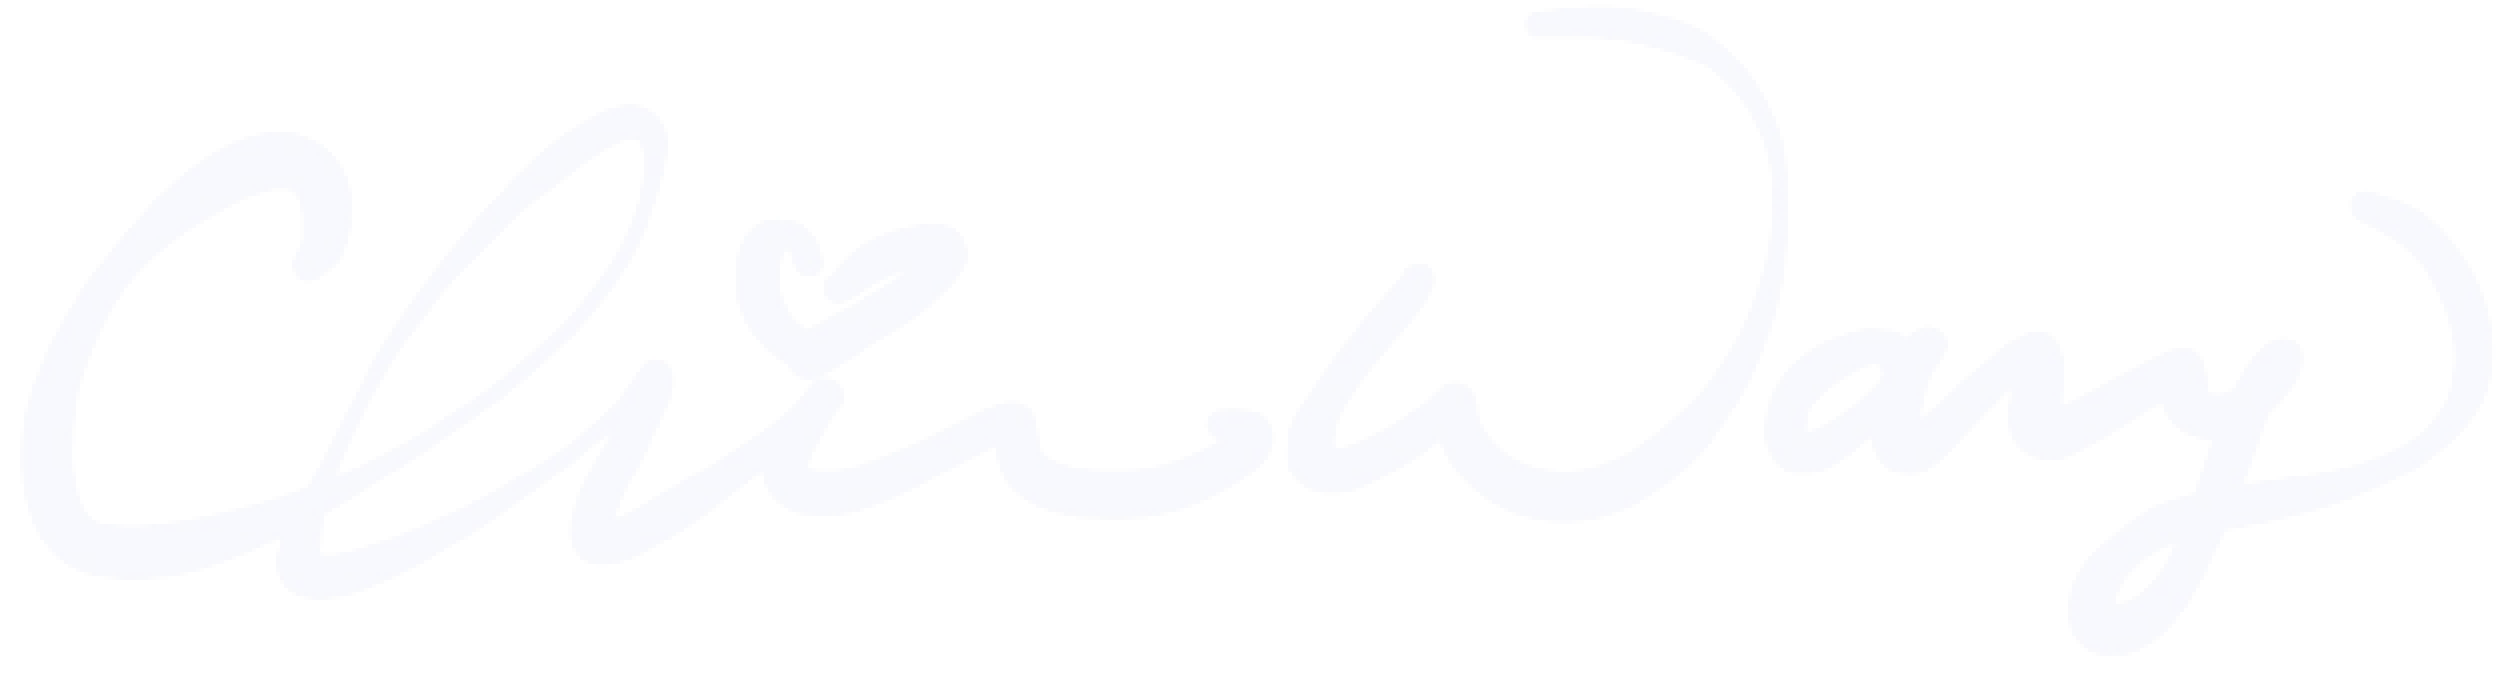 signature of claire